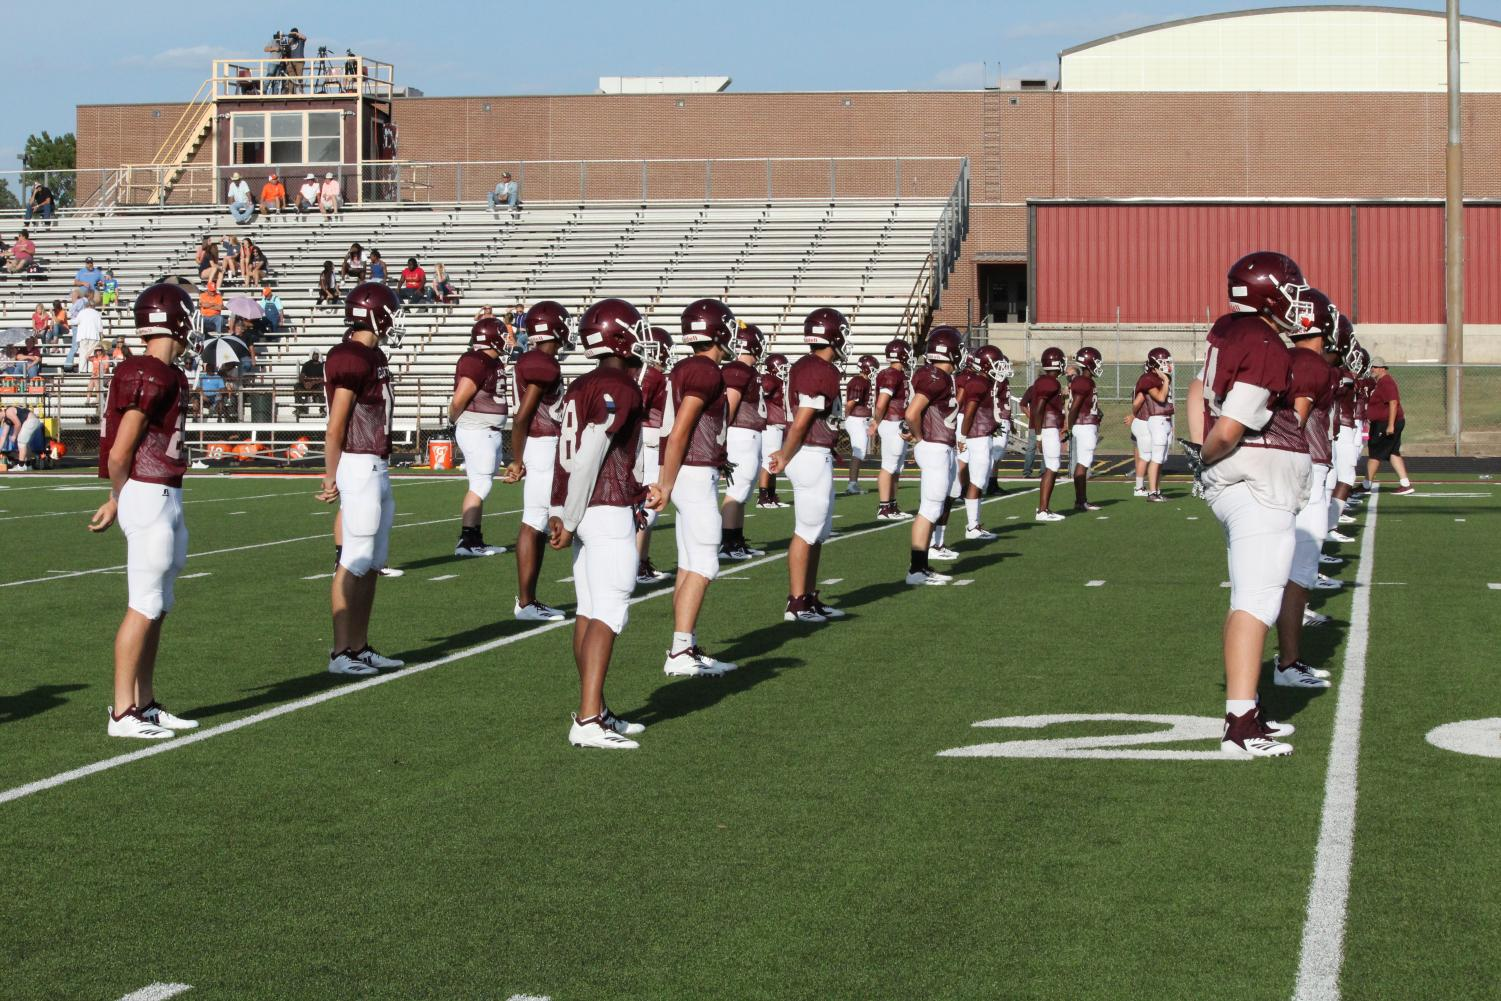 The Varsity football team lines up to begin warm-ups at the scrimmage against Teague on August 17. Photo by Morgan Coleman.